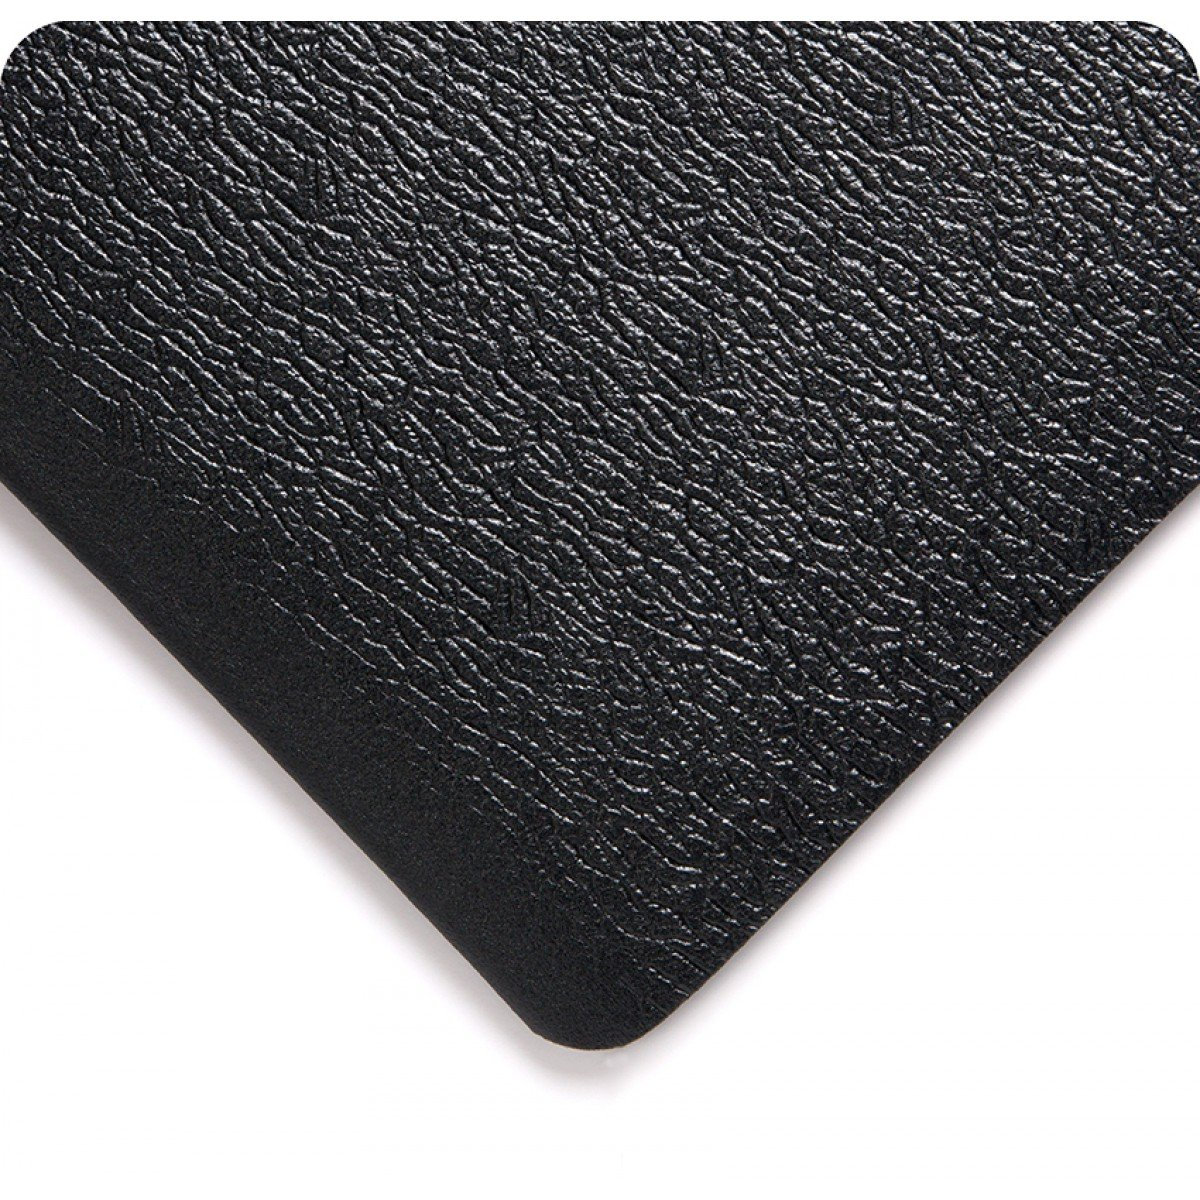 Sale special price Wearwell 444.58x2x9BK Deluxe Denver Mall Soft Step Mat x Length Width 9' 2'